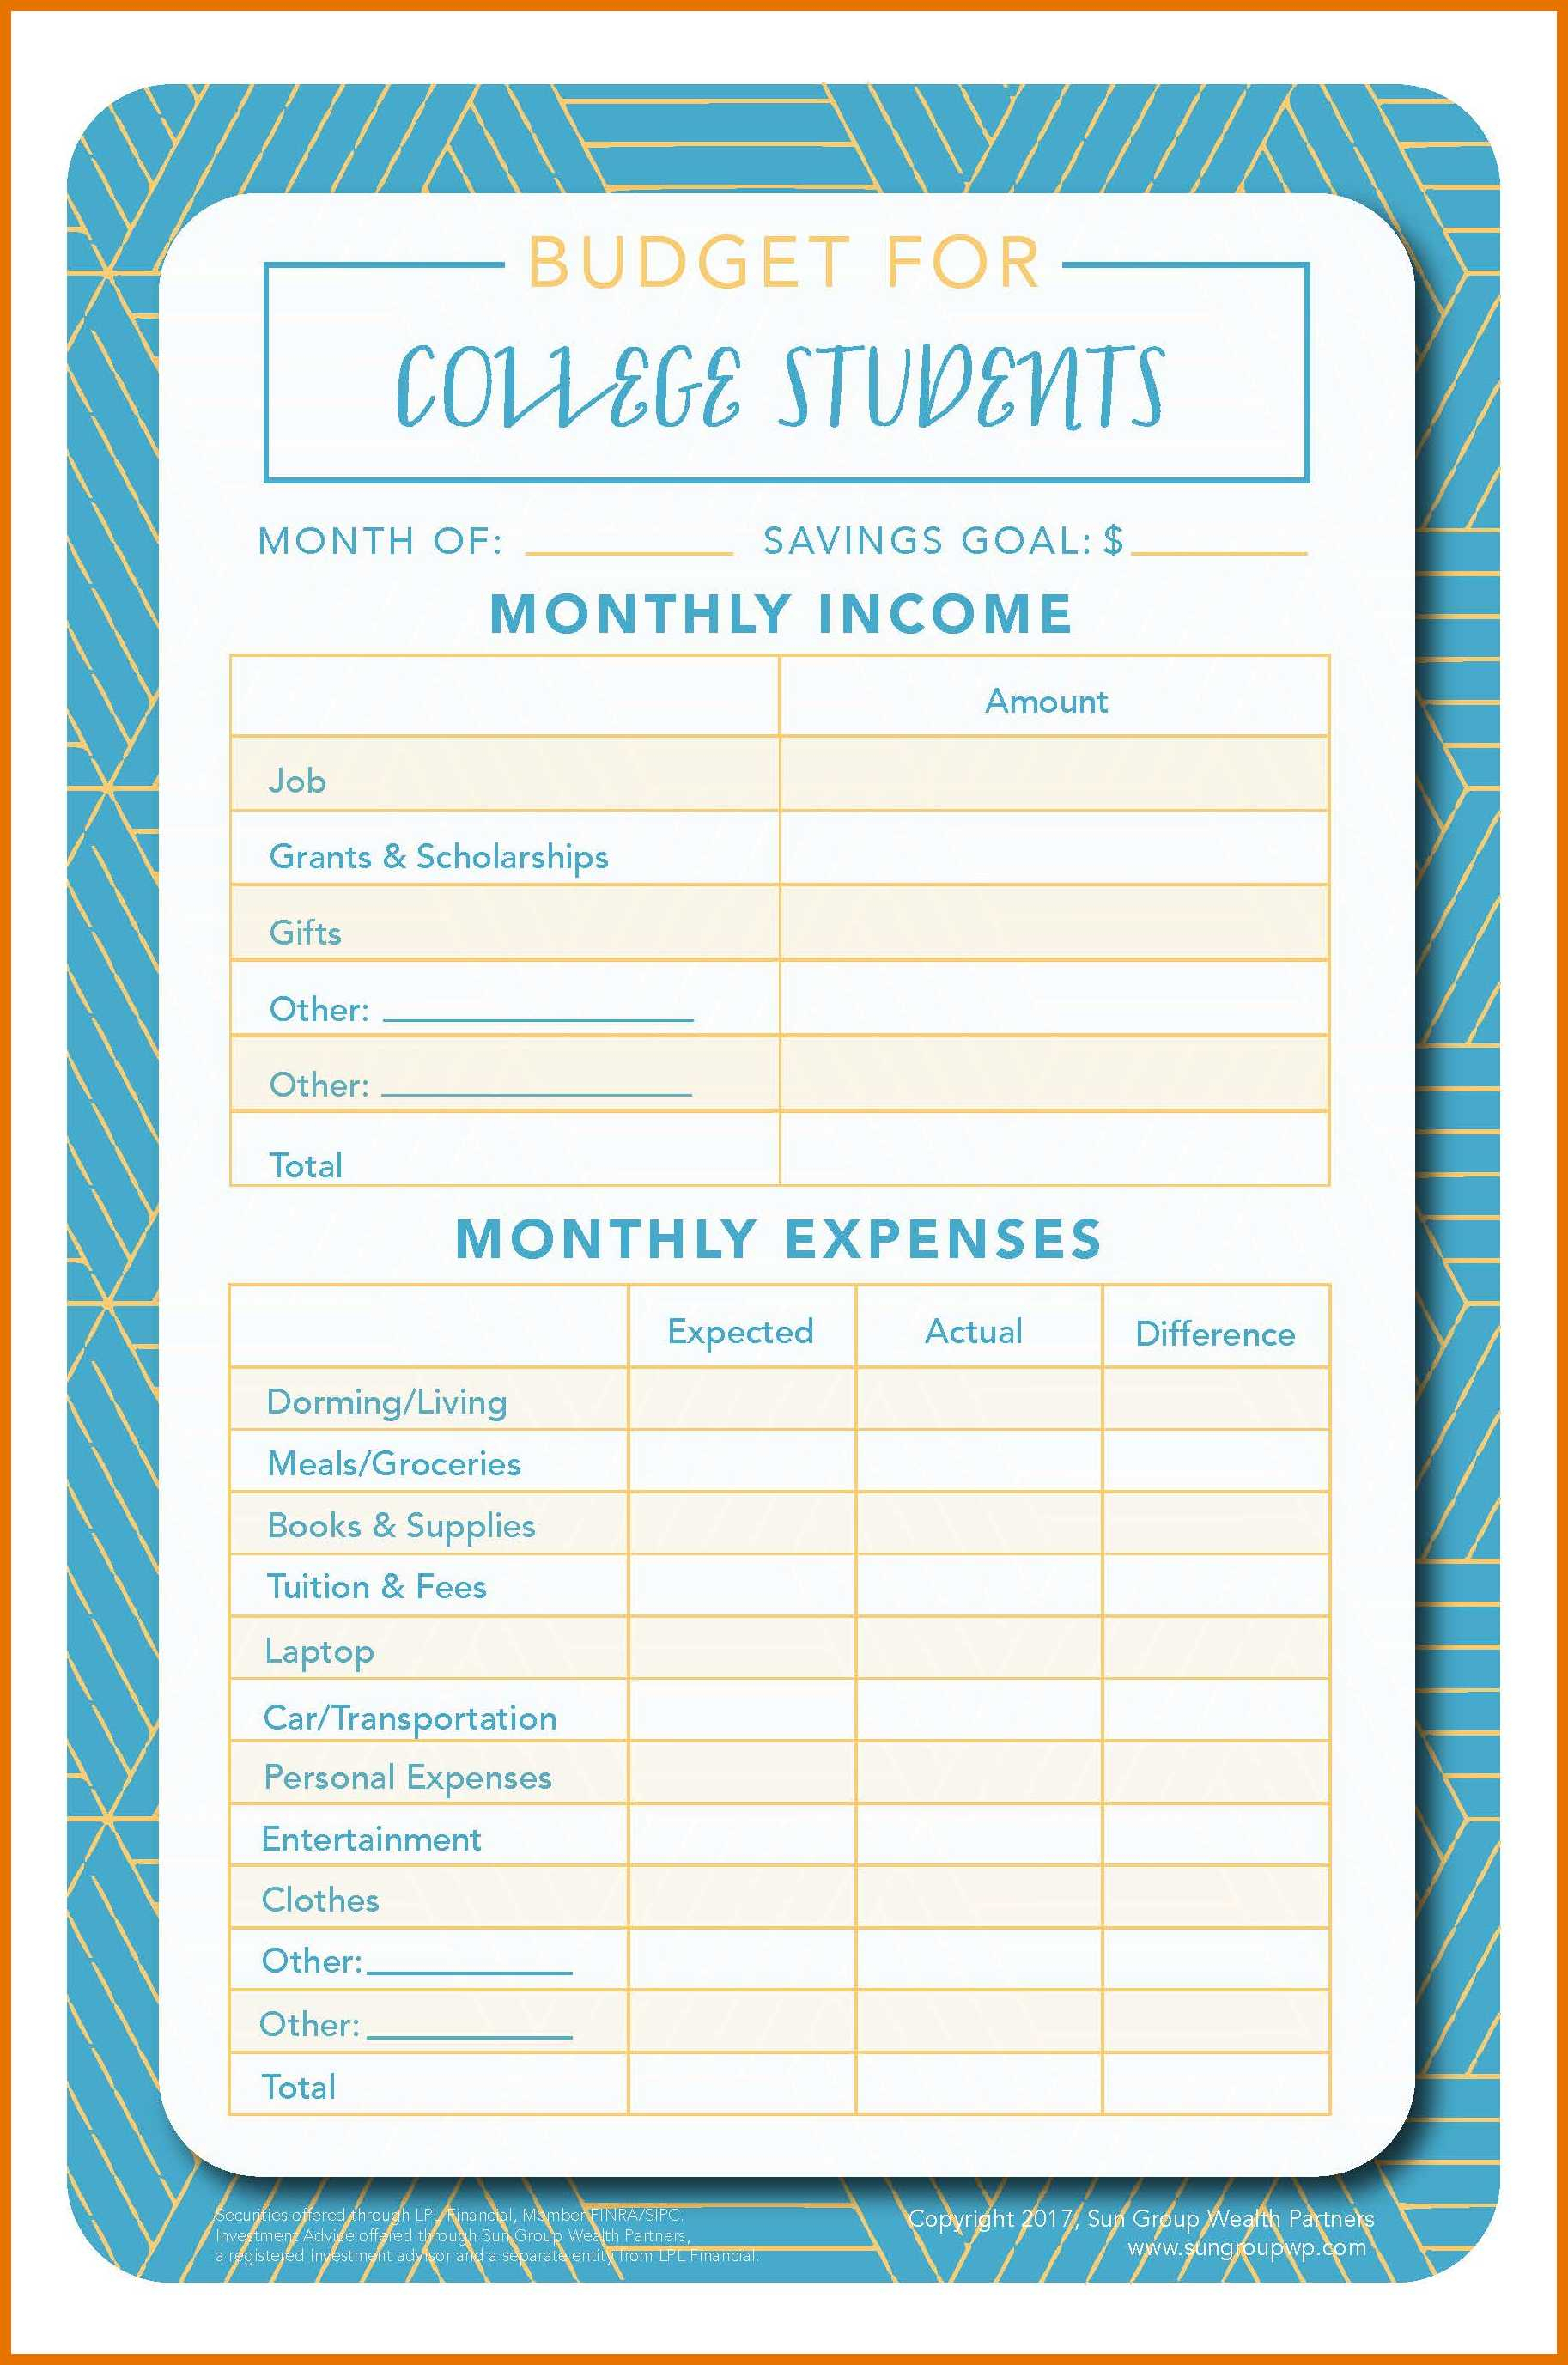 Assisted Living Budget Spreadsheet Spreadsheet Downloa Assisted Living Budget Spreadsheet